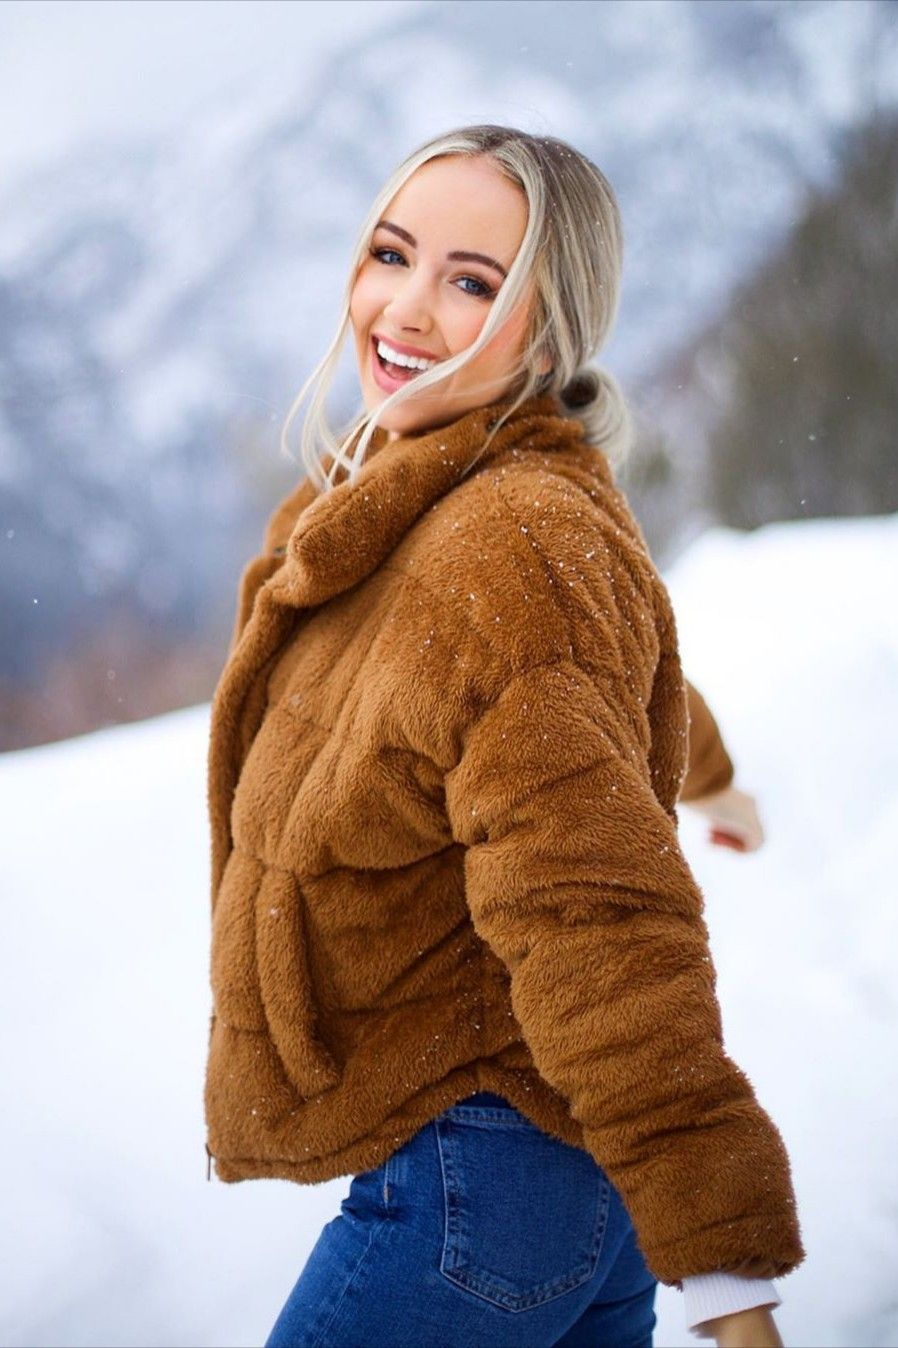 Pin von Dr Who auf Beauty in the snow in 2020